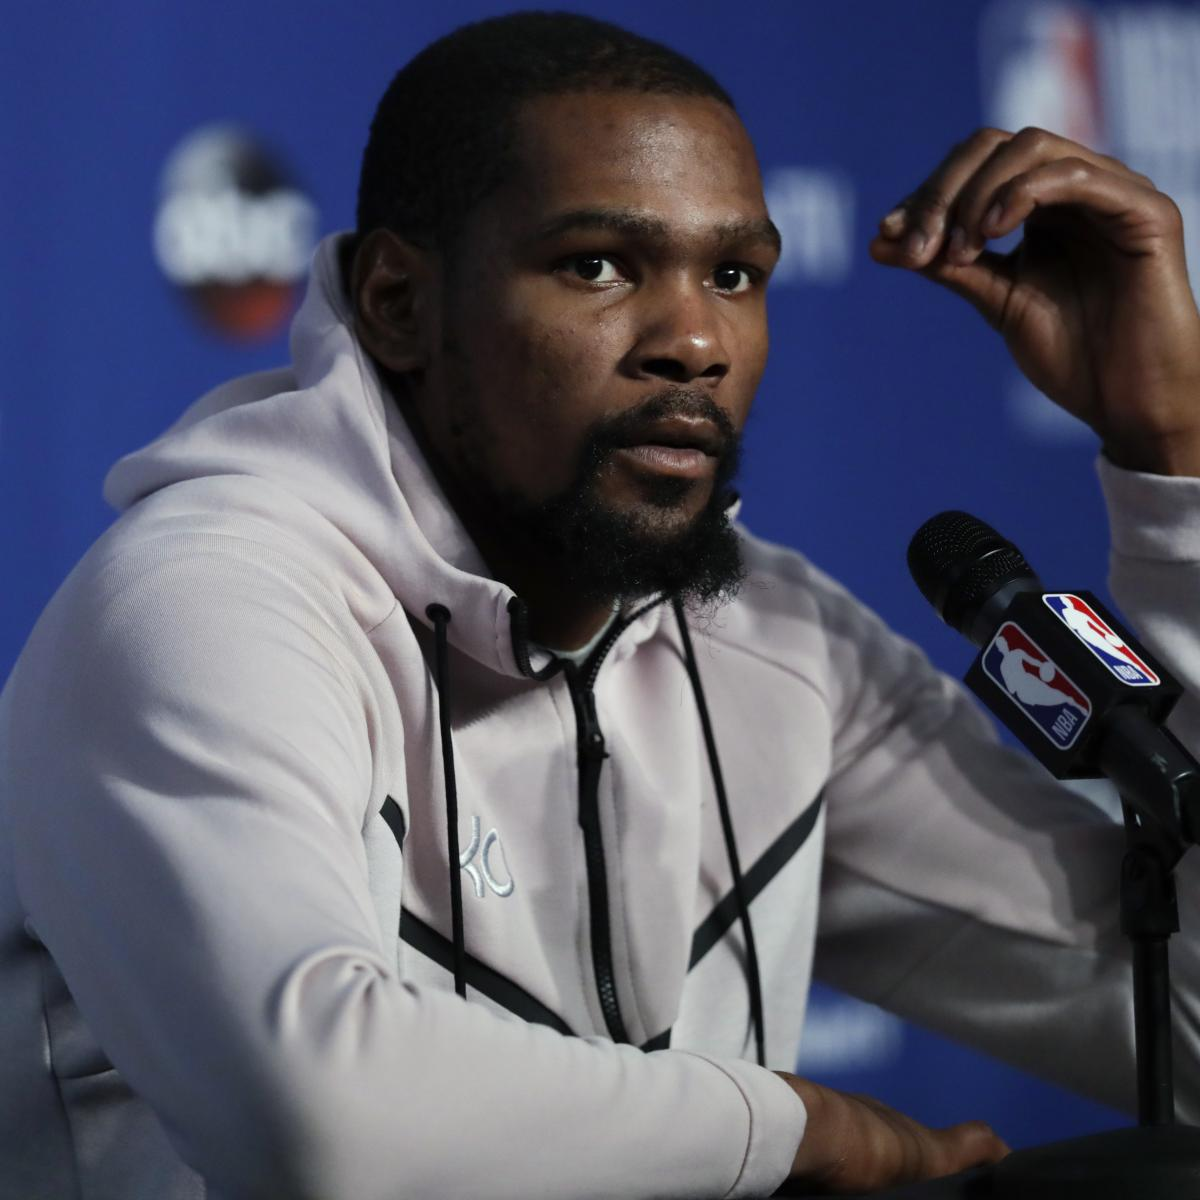 Warriors Come Out To Play Bleacher Report: Kevin Durant Argues With Teenager On Instagram After